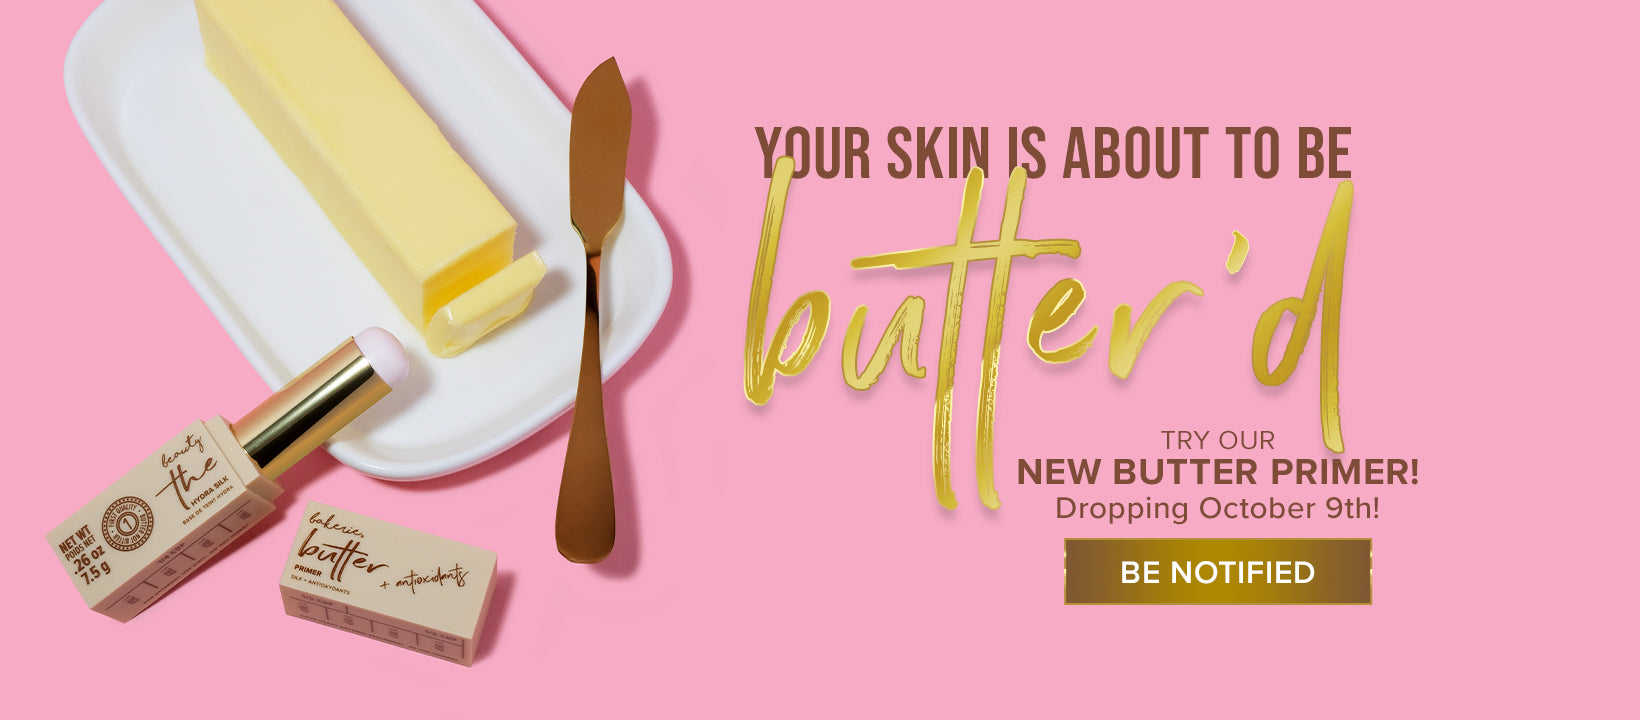 View the butter hydrasilk primer